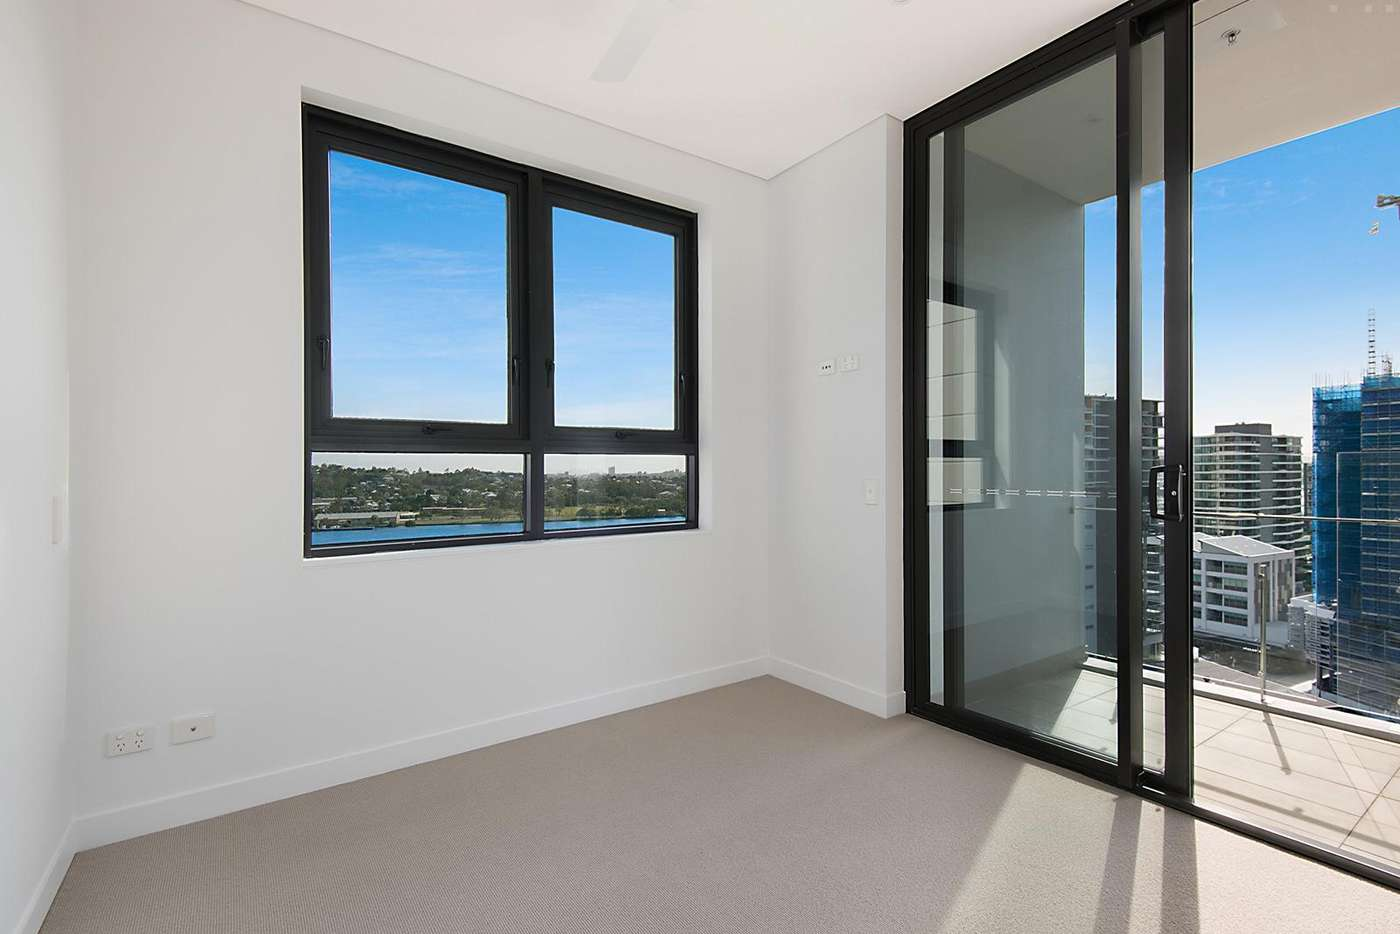 Sixth view of Homely apartment listing, 3103/33 Remora Road, Hamilton QLD 4007